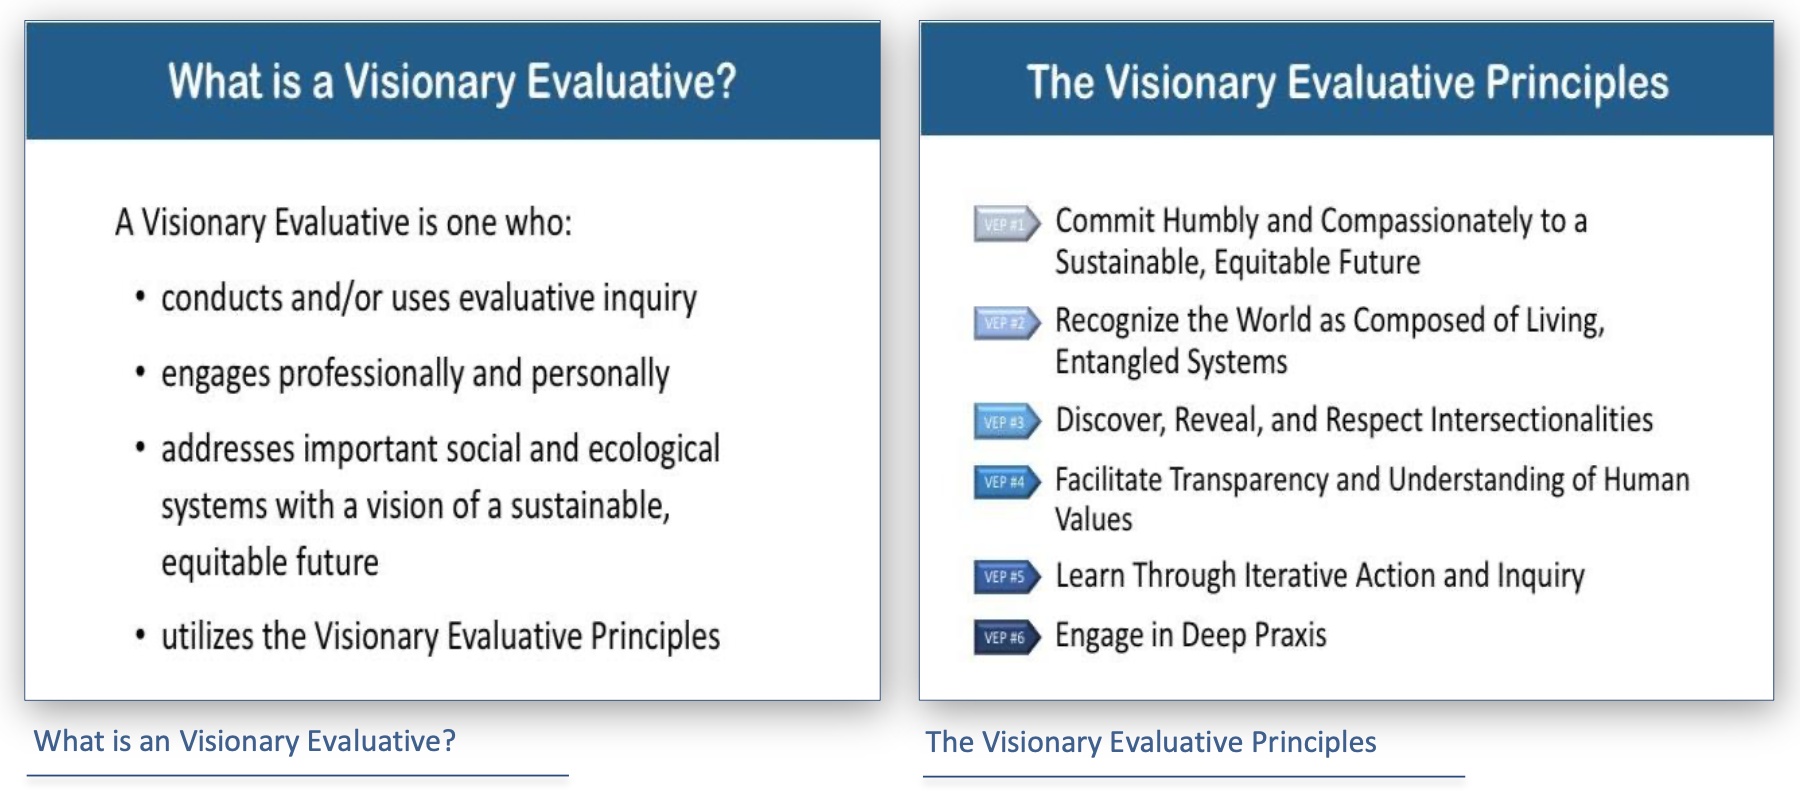 What is a Visionary Evaluative and Visionary Evaluative Principles bullet points